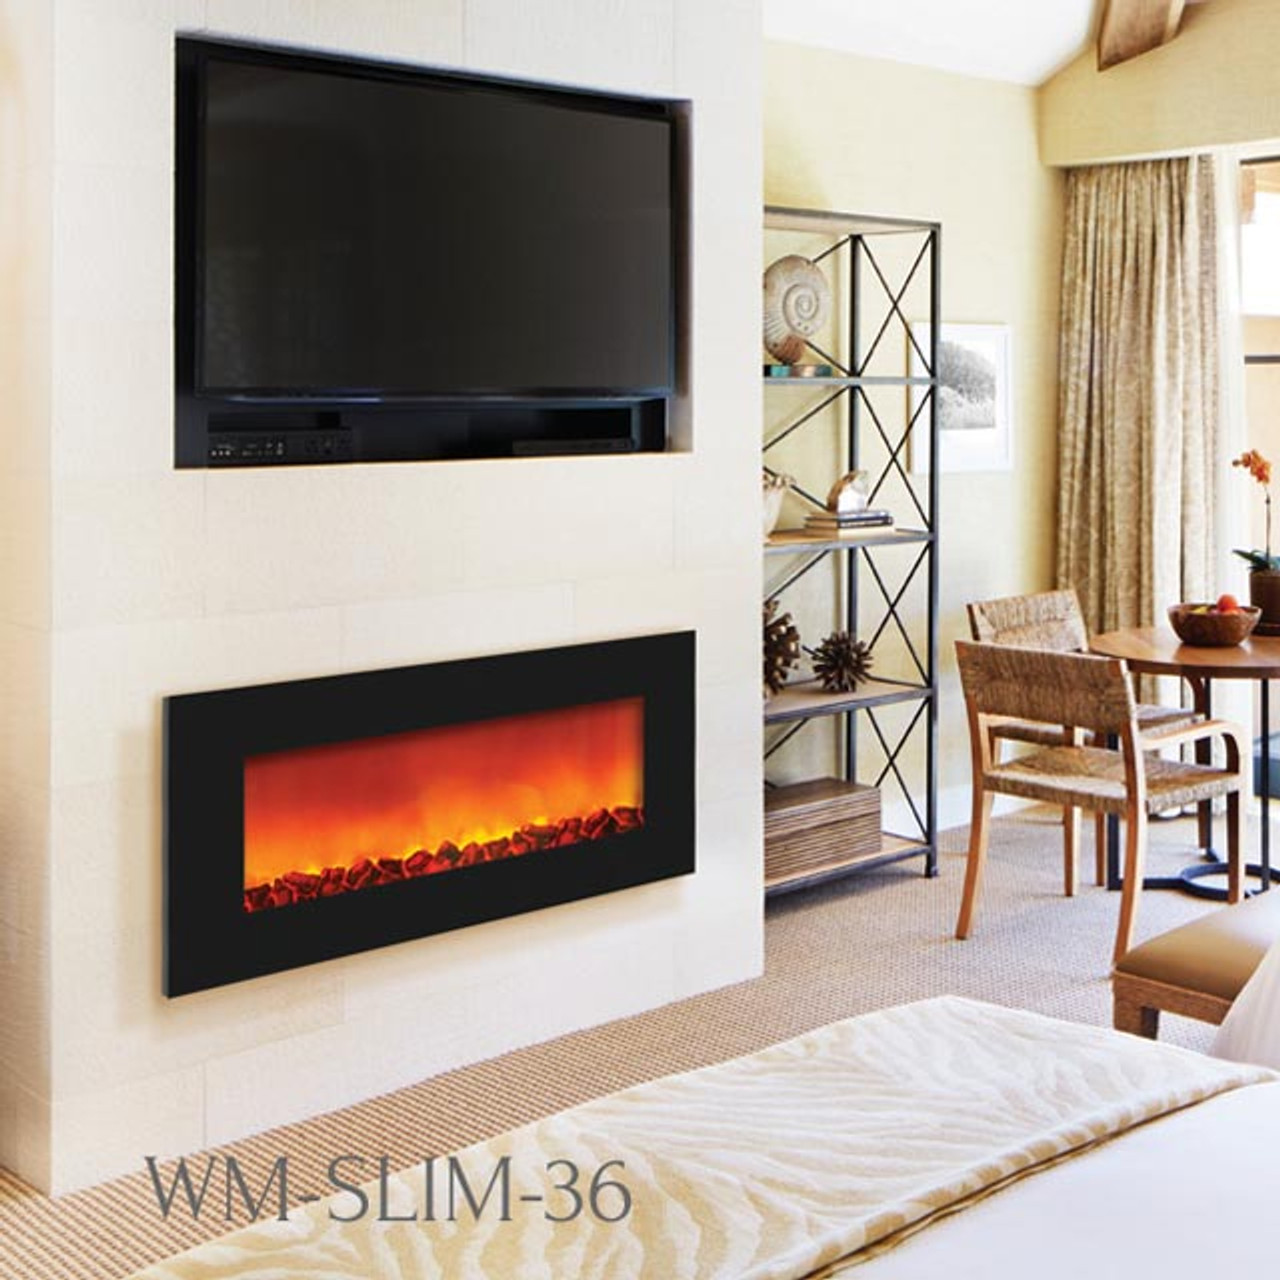 DISCOUNT SIERRA FLAME SLIM WALL MOUNT ELECTRIC FIREPLACES AT FIREPLACESRUS.NET